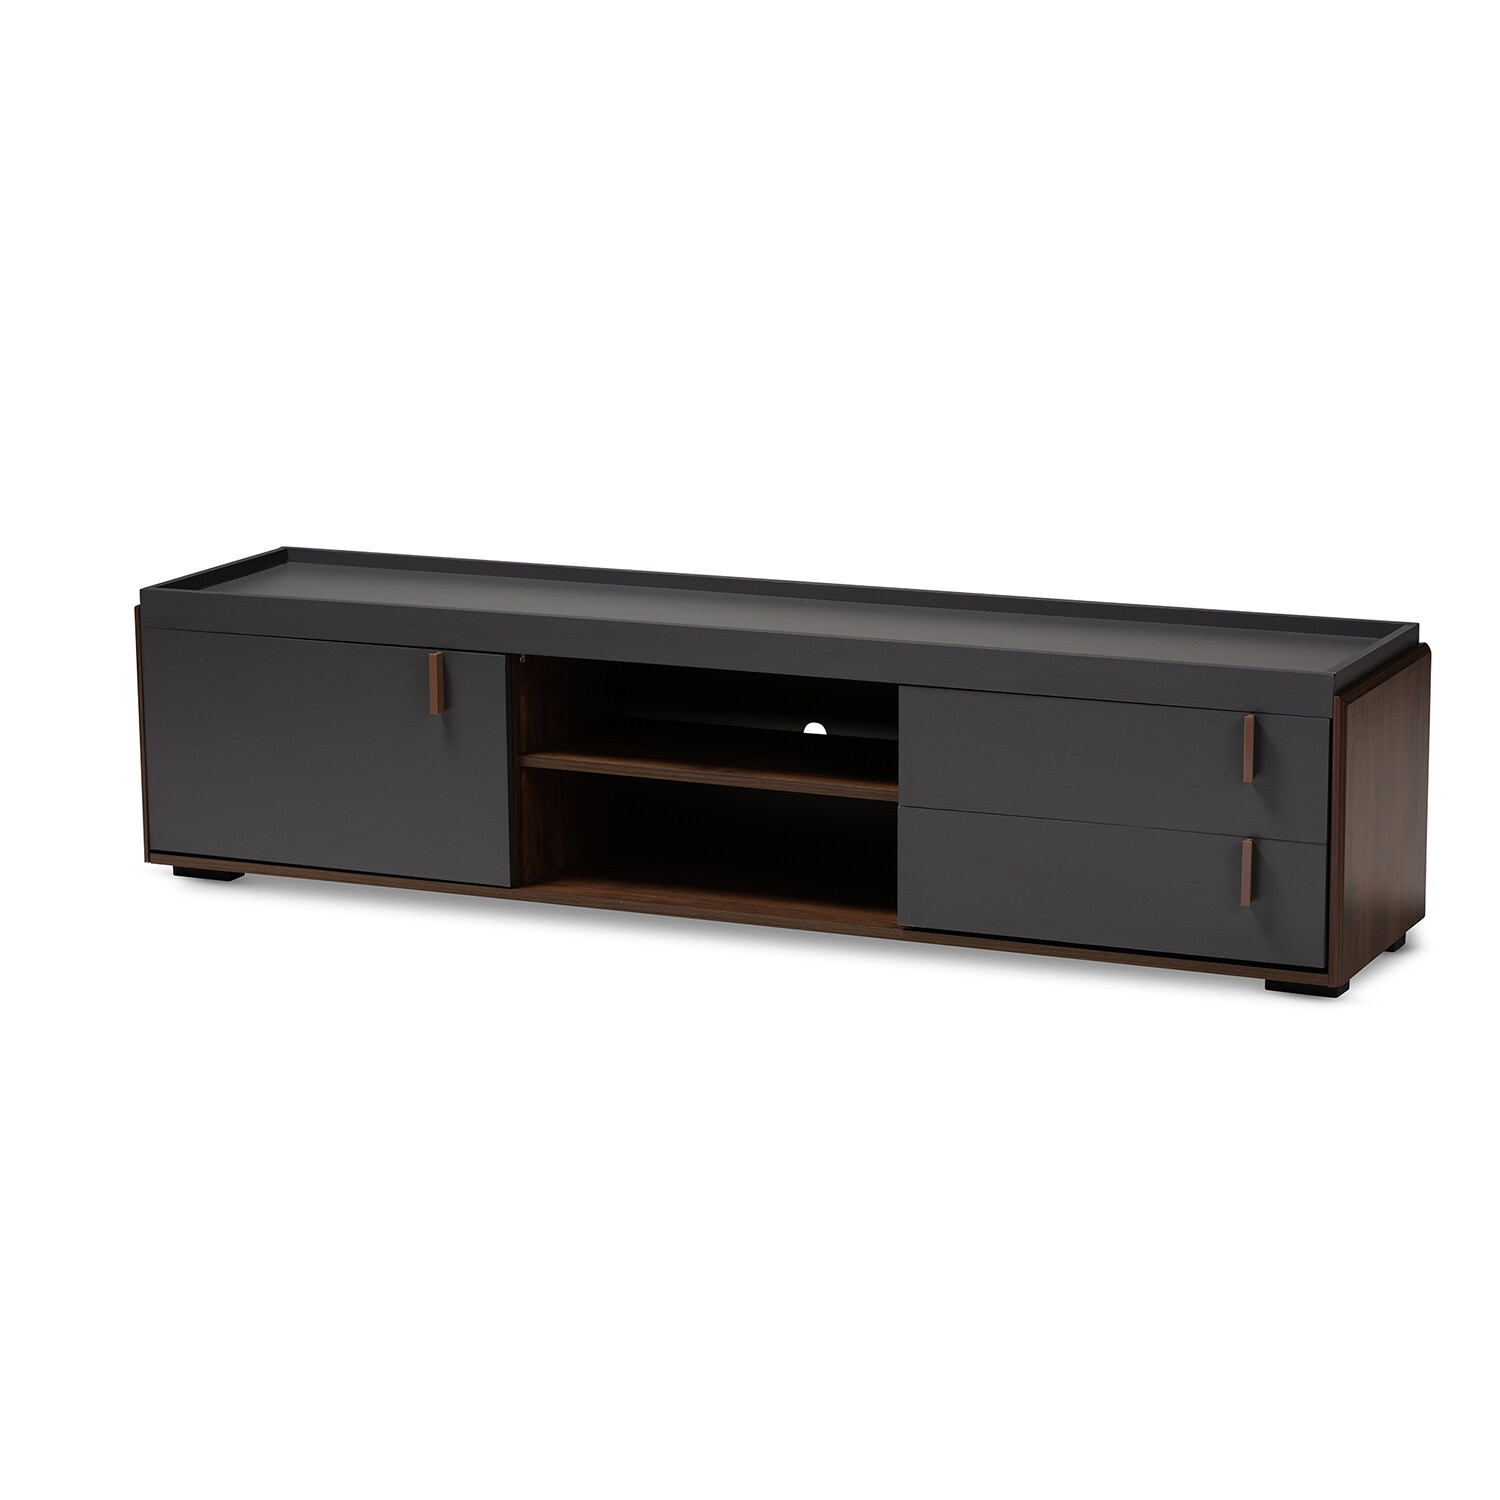 Baxton Studio Rikke Charcoal TV Stand